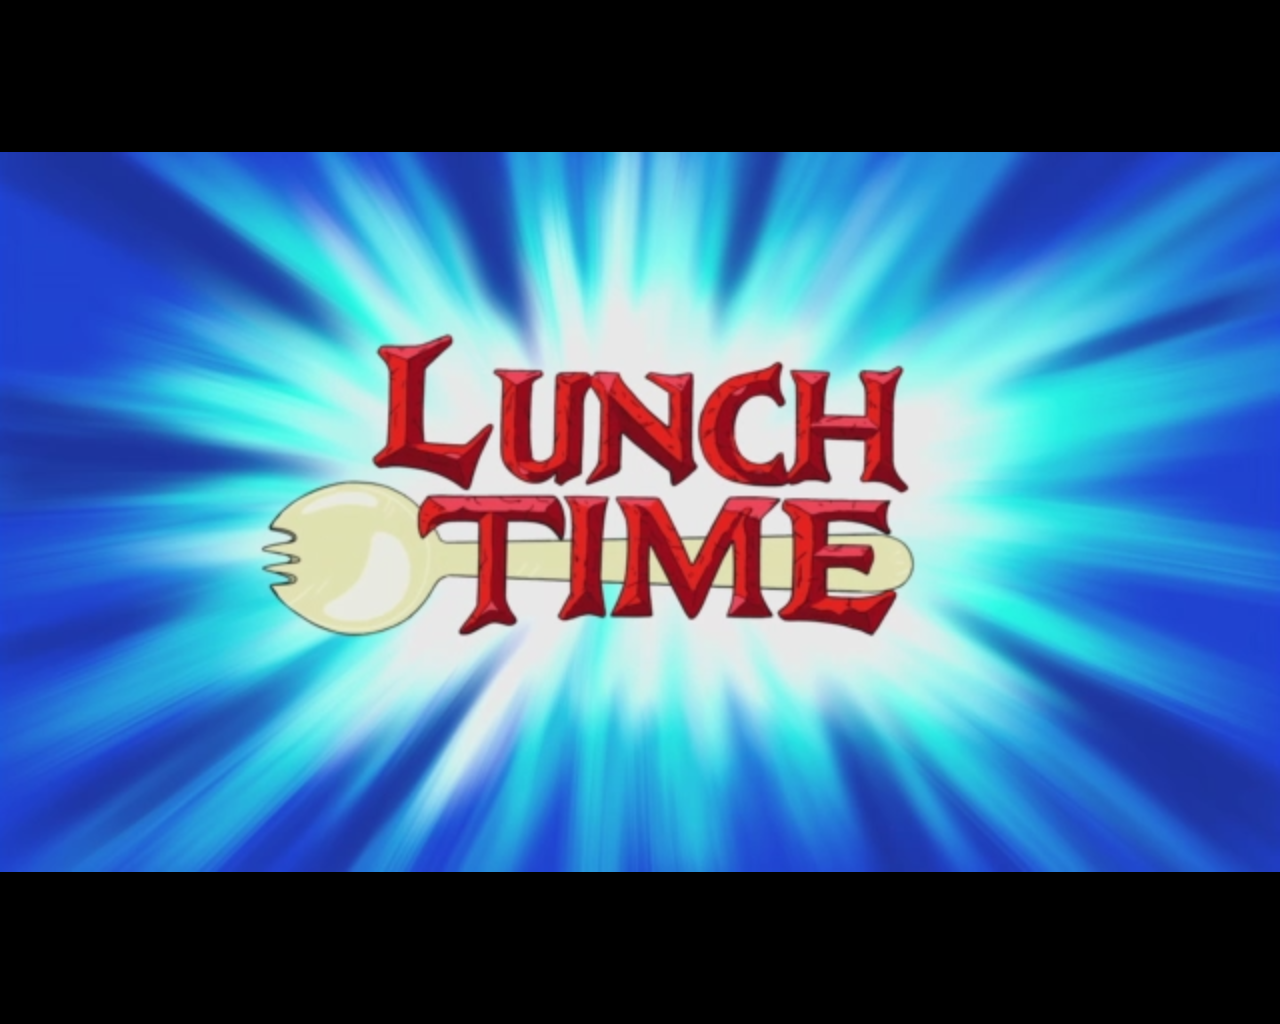 Do you sit together at lunch?